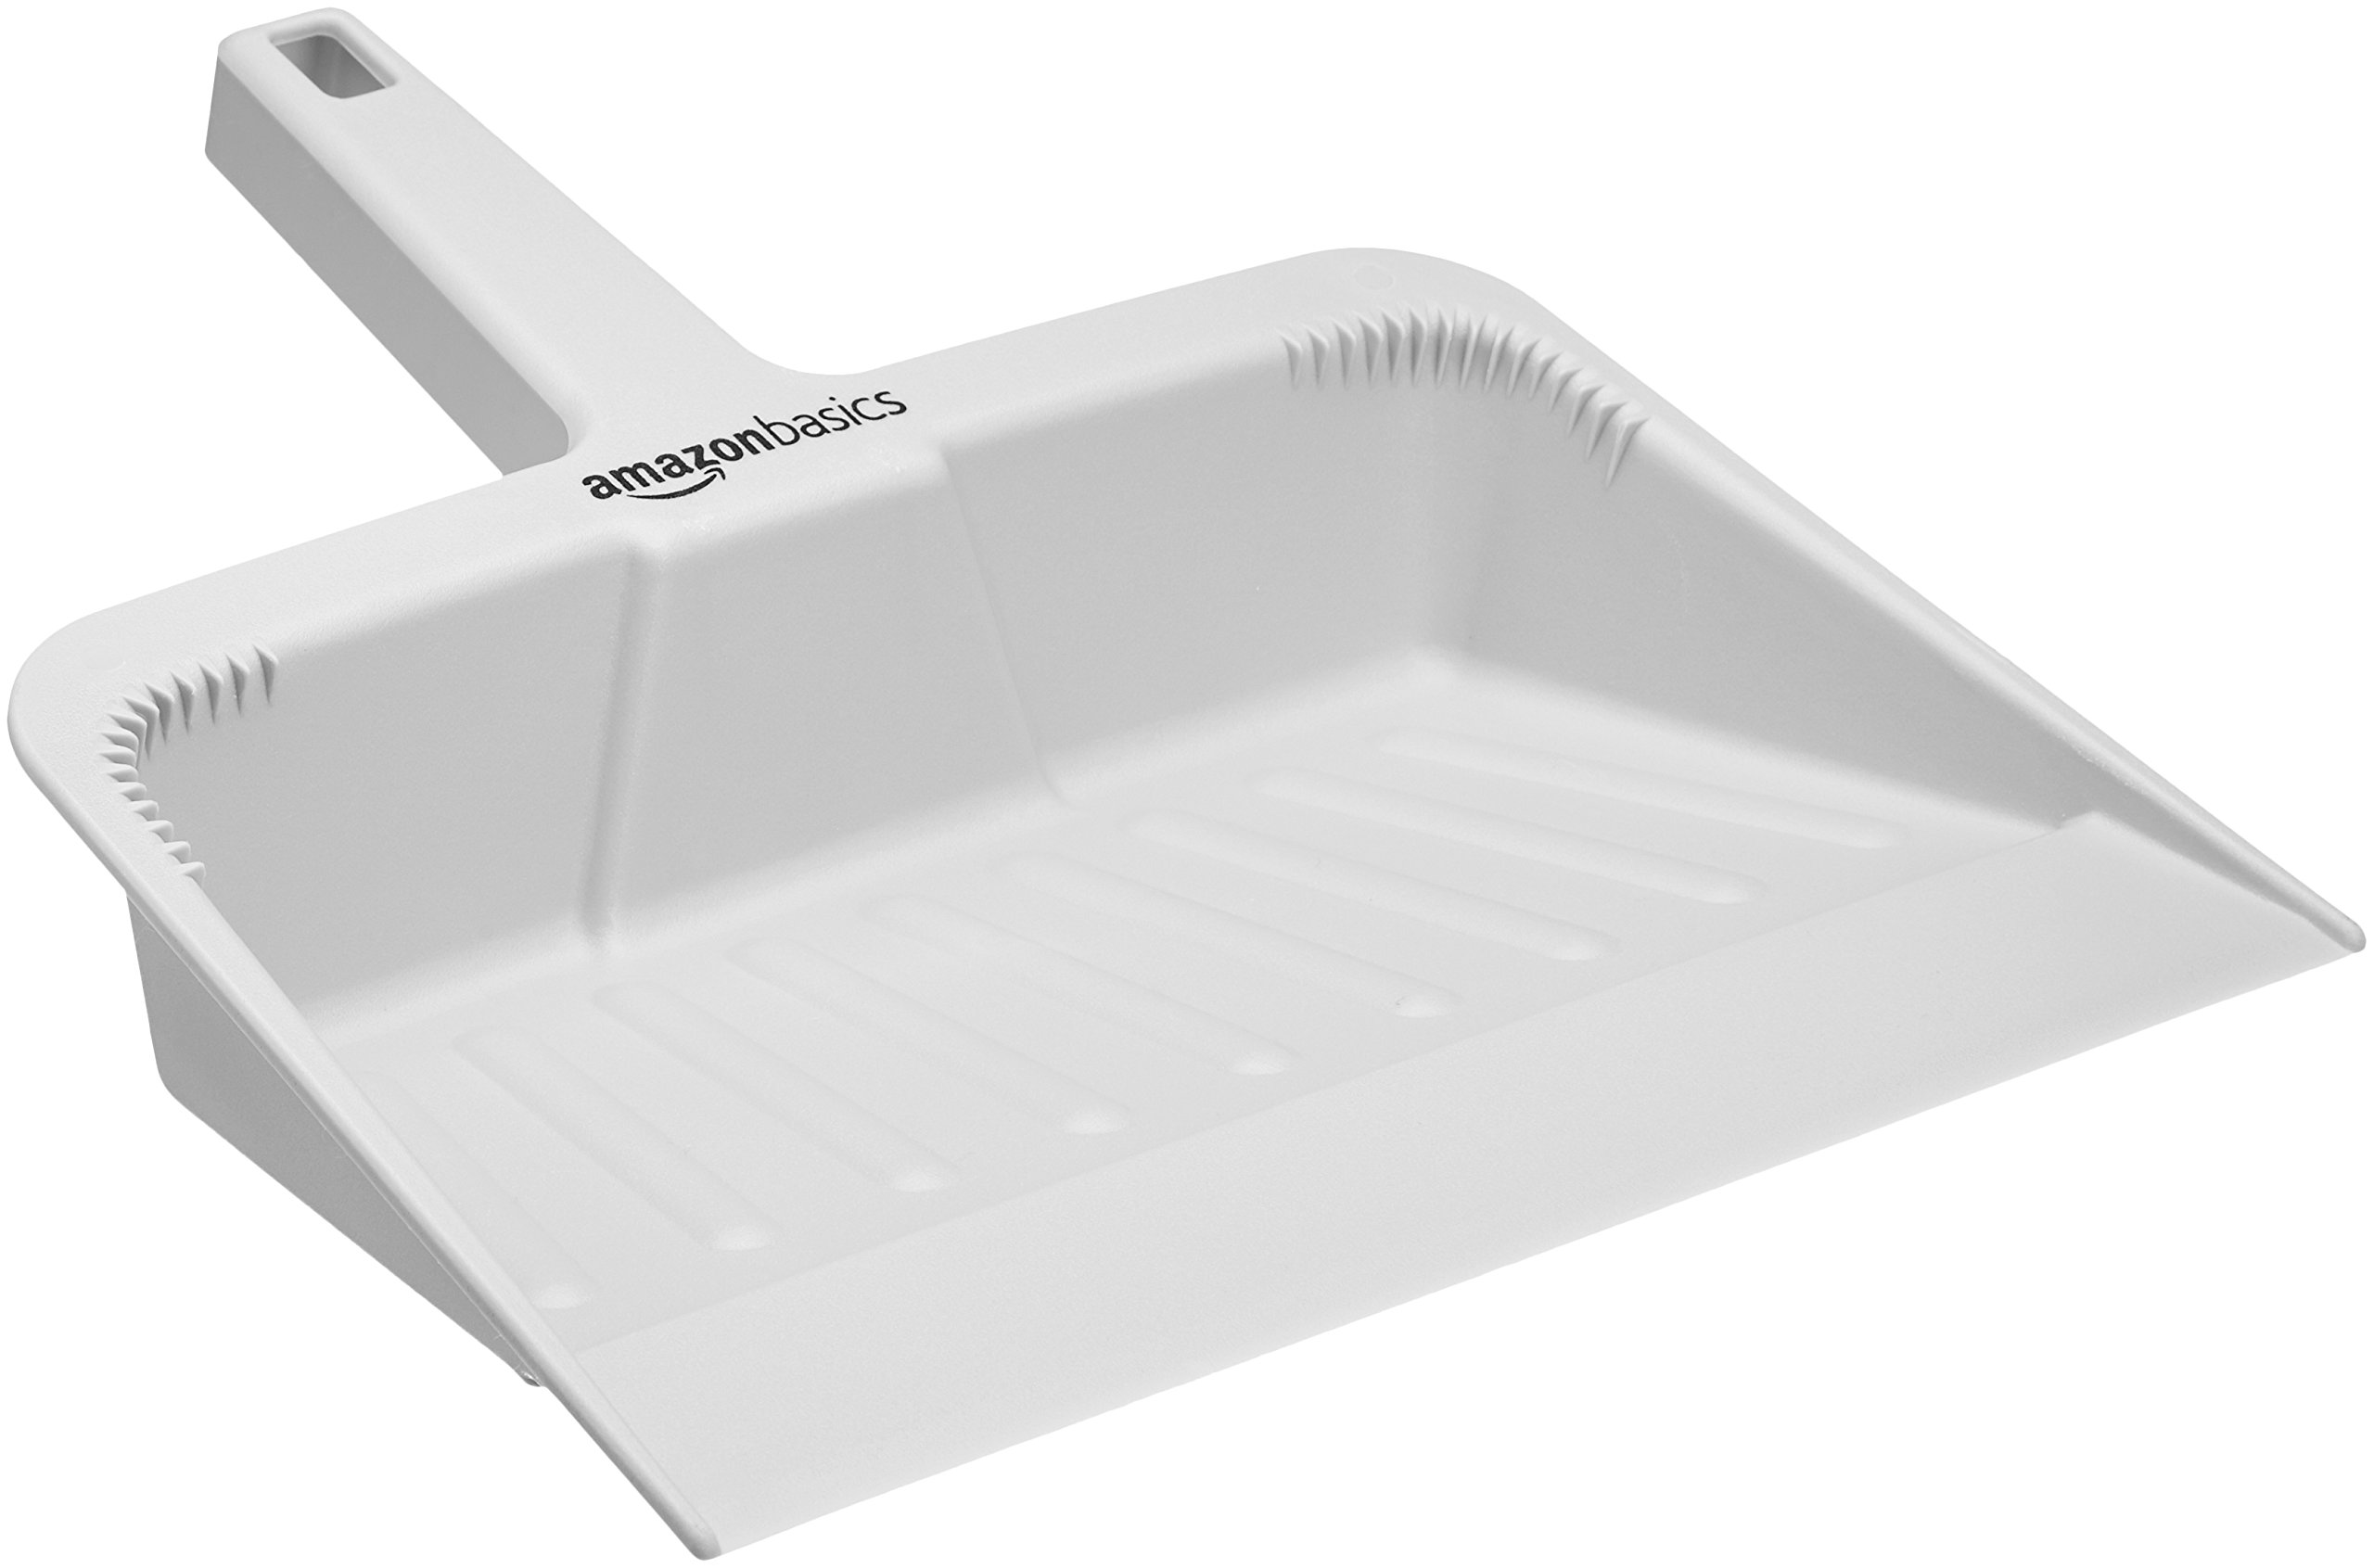 AmazonBasics Heavy-Duty 12-inch Dustpan, Grey - 6-Pack